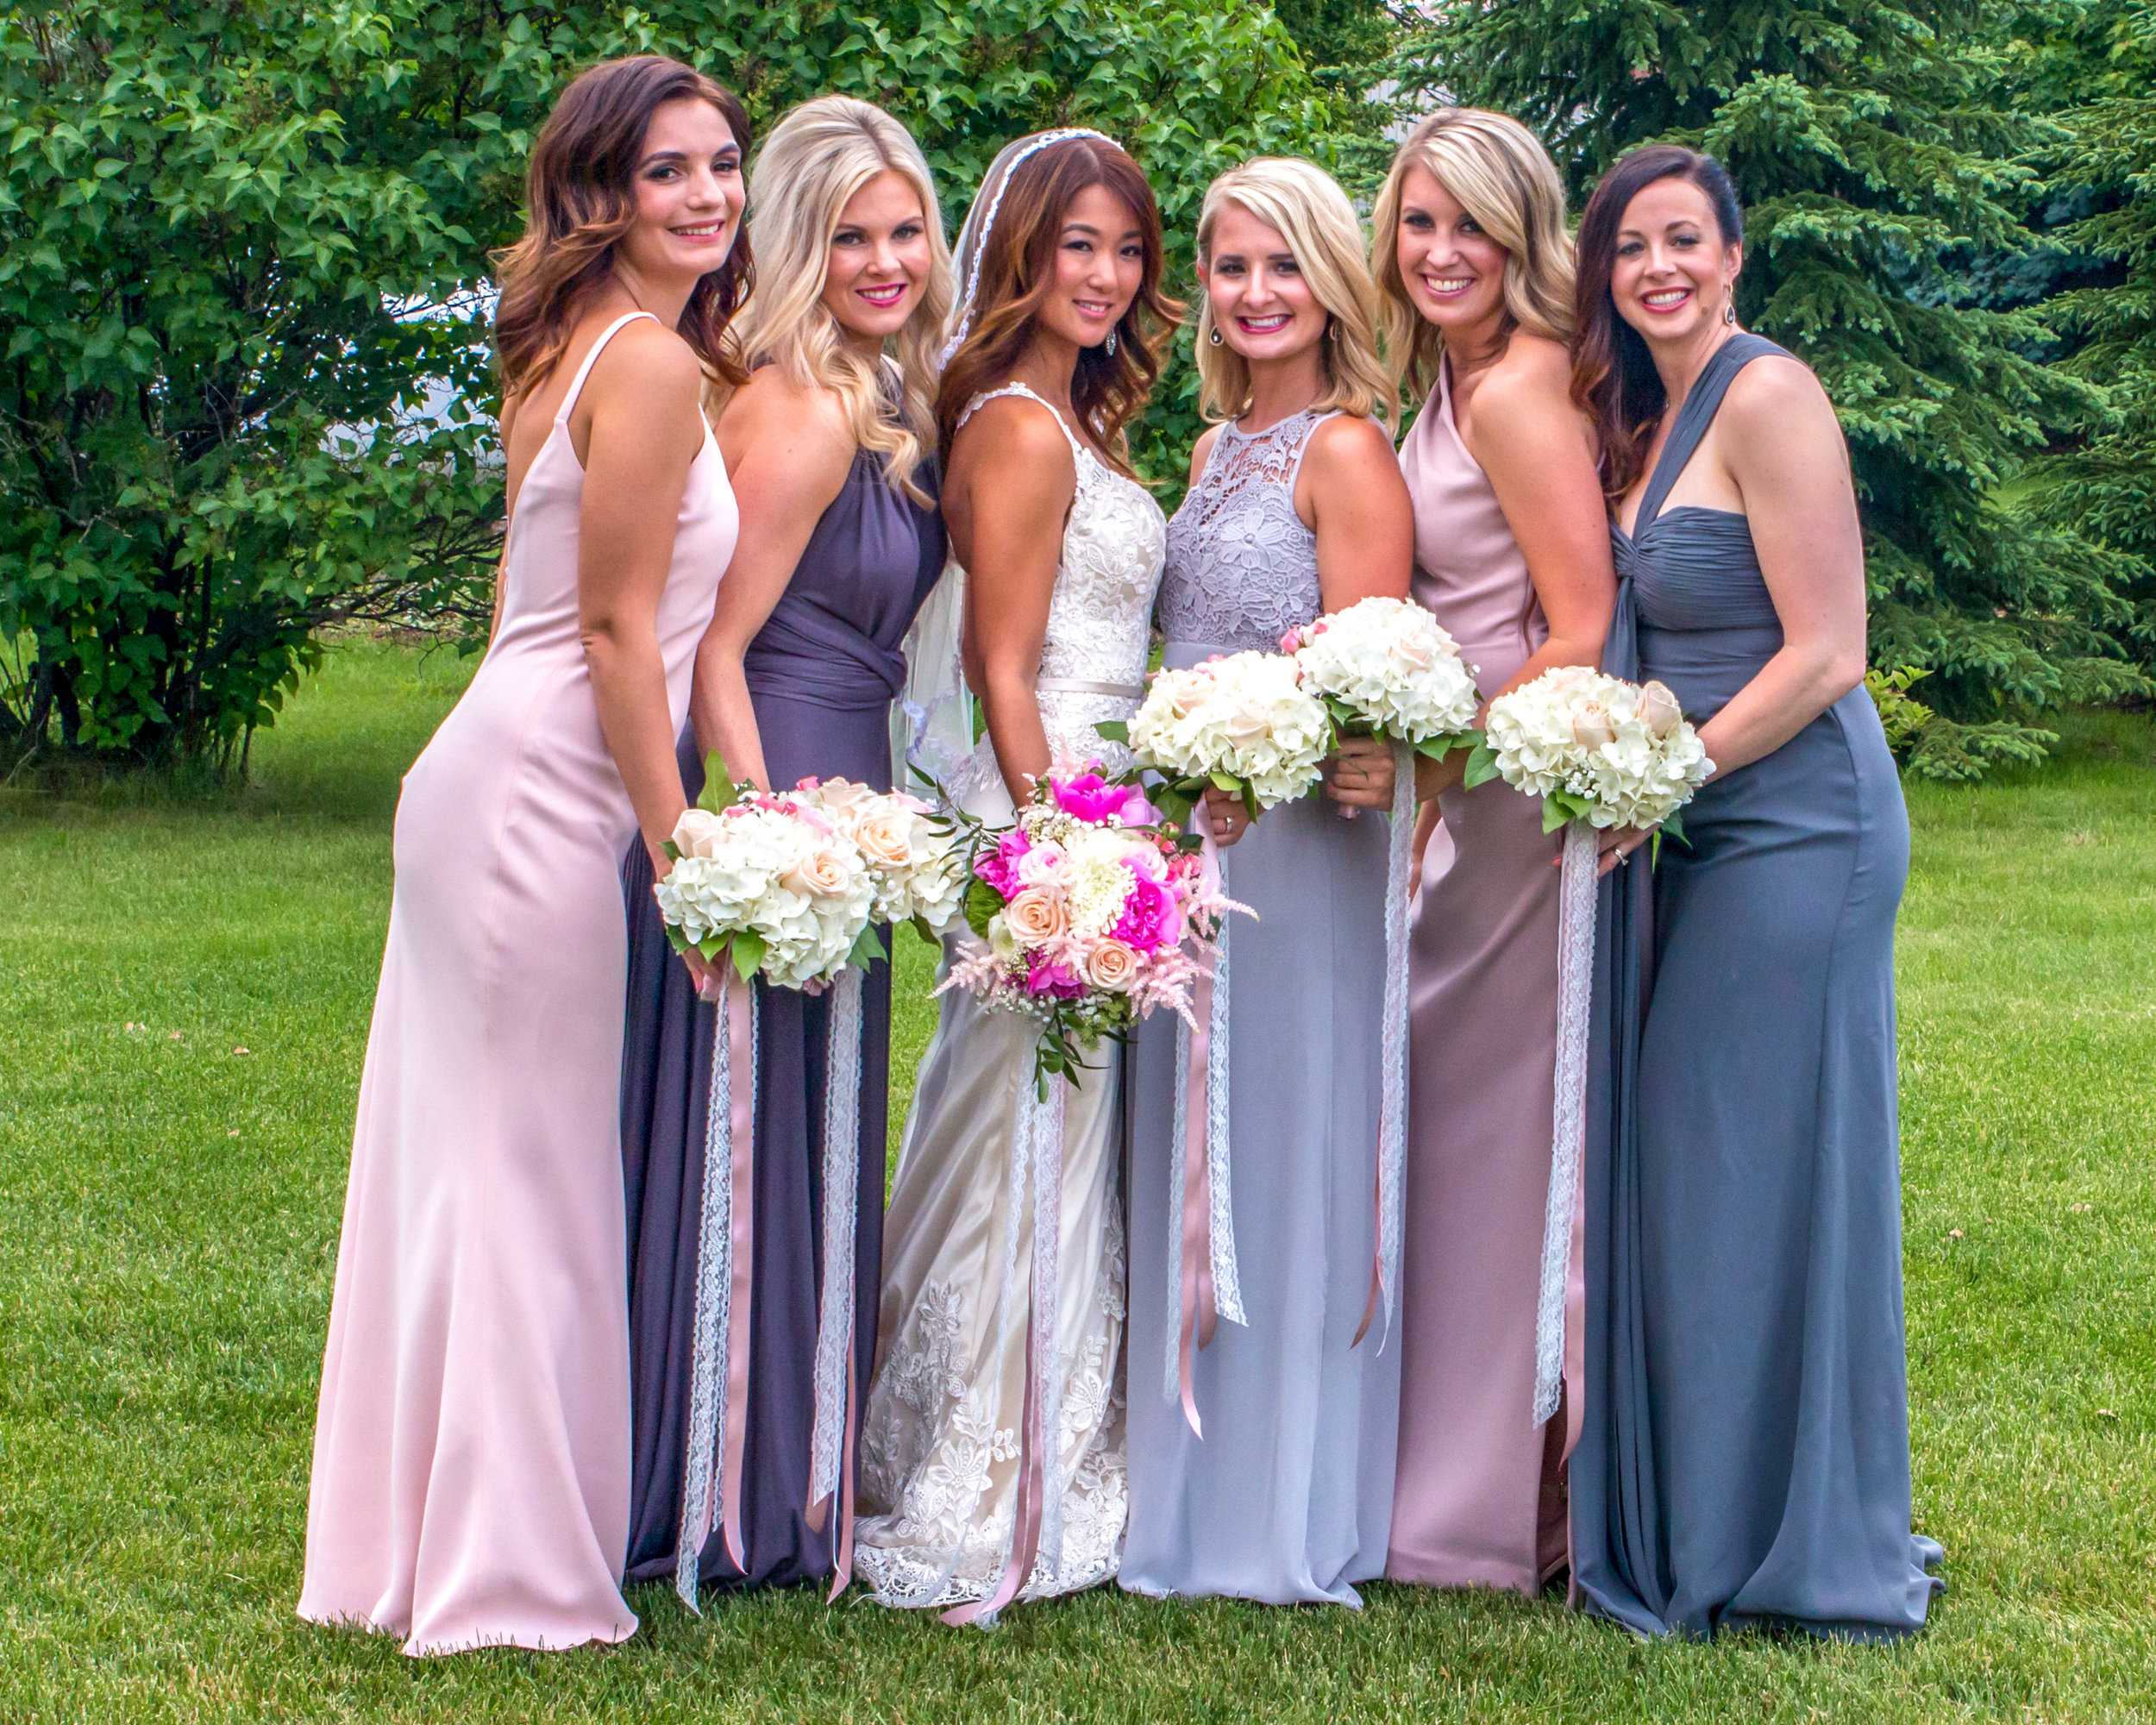 Minnesota Wedding at Glenhaven, outdoor ceremony, Fab Weddings, bridal party